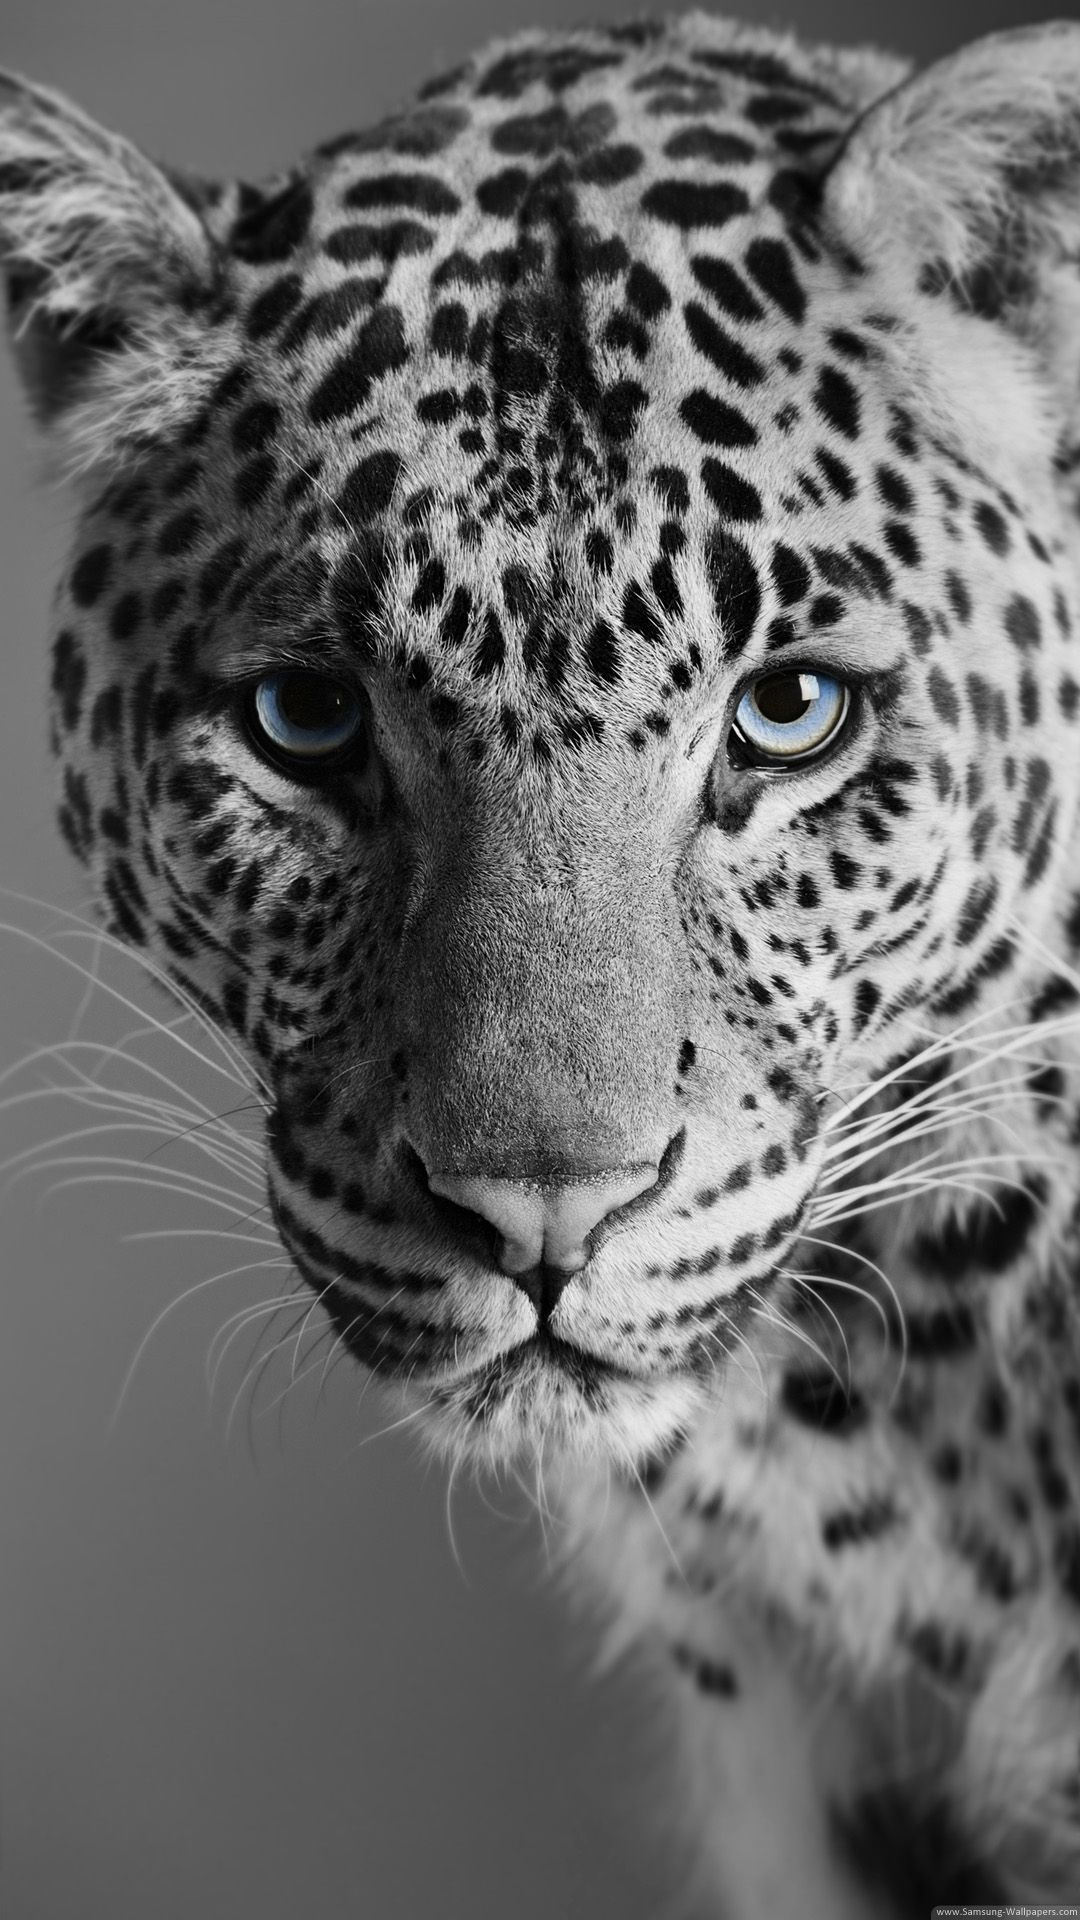 Pin By Abelard On Hayvan Fotografciligi In 2020 Wild Animal Wallpaper Jaguar Animal Animals Black And White